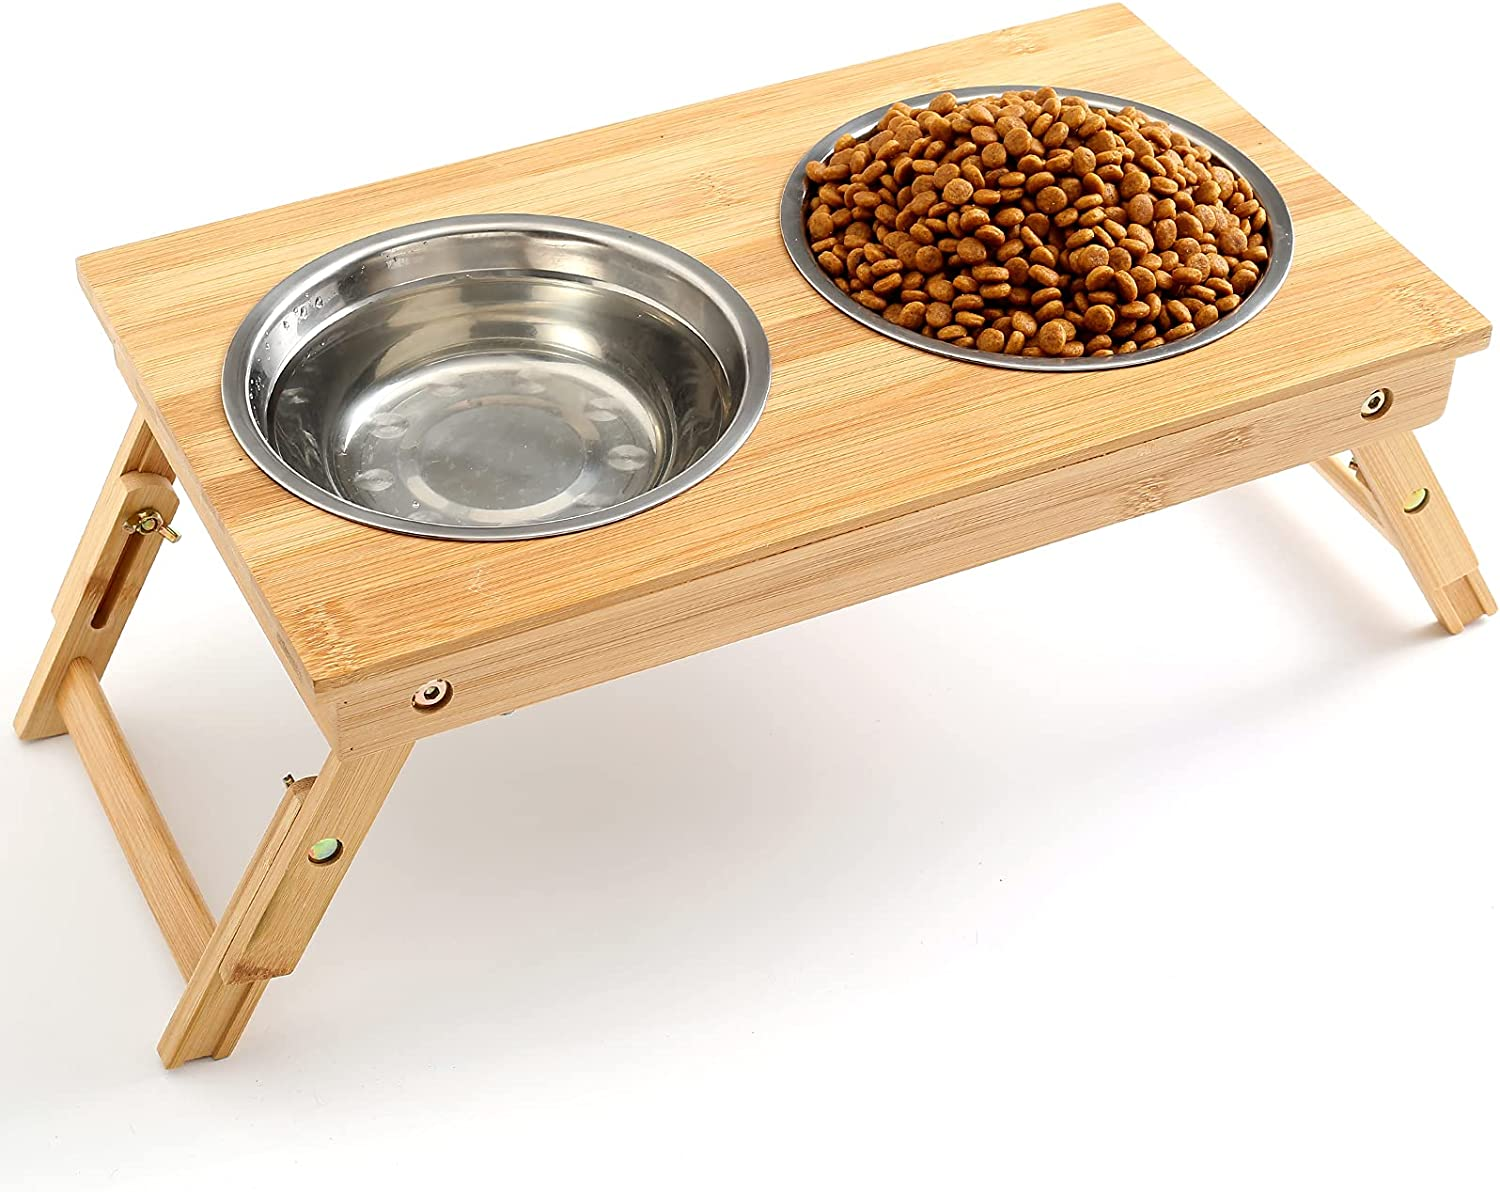 CYBMBO Raised Pet Bowls for Dogs and Cats, Adjustable Elevated Dog Bowls for Small and Medium Size Dog, Food Water Bamboo Feeder with Stand, 2 Bowls, Non-Slip, No Need Assemble (Height 5.12